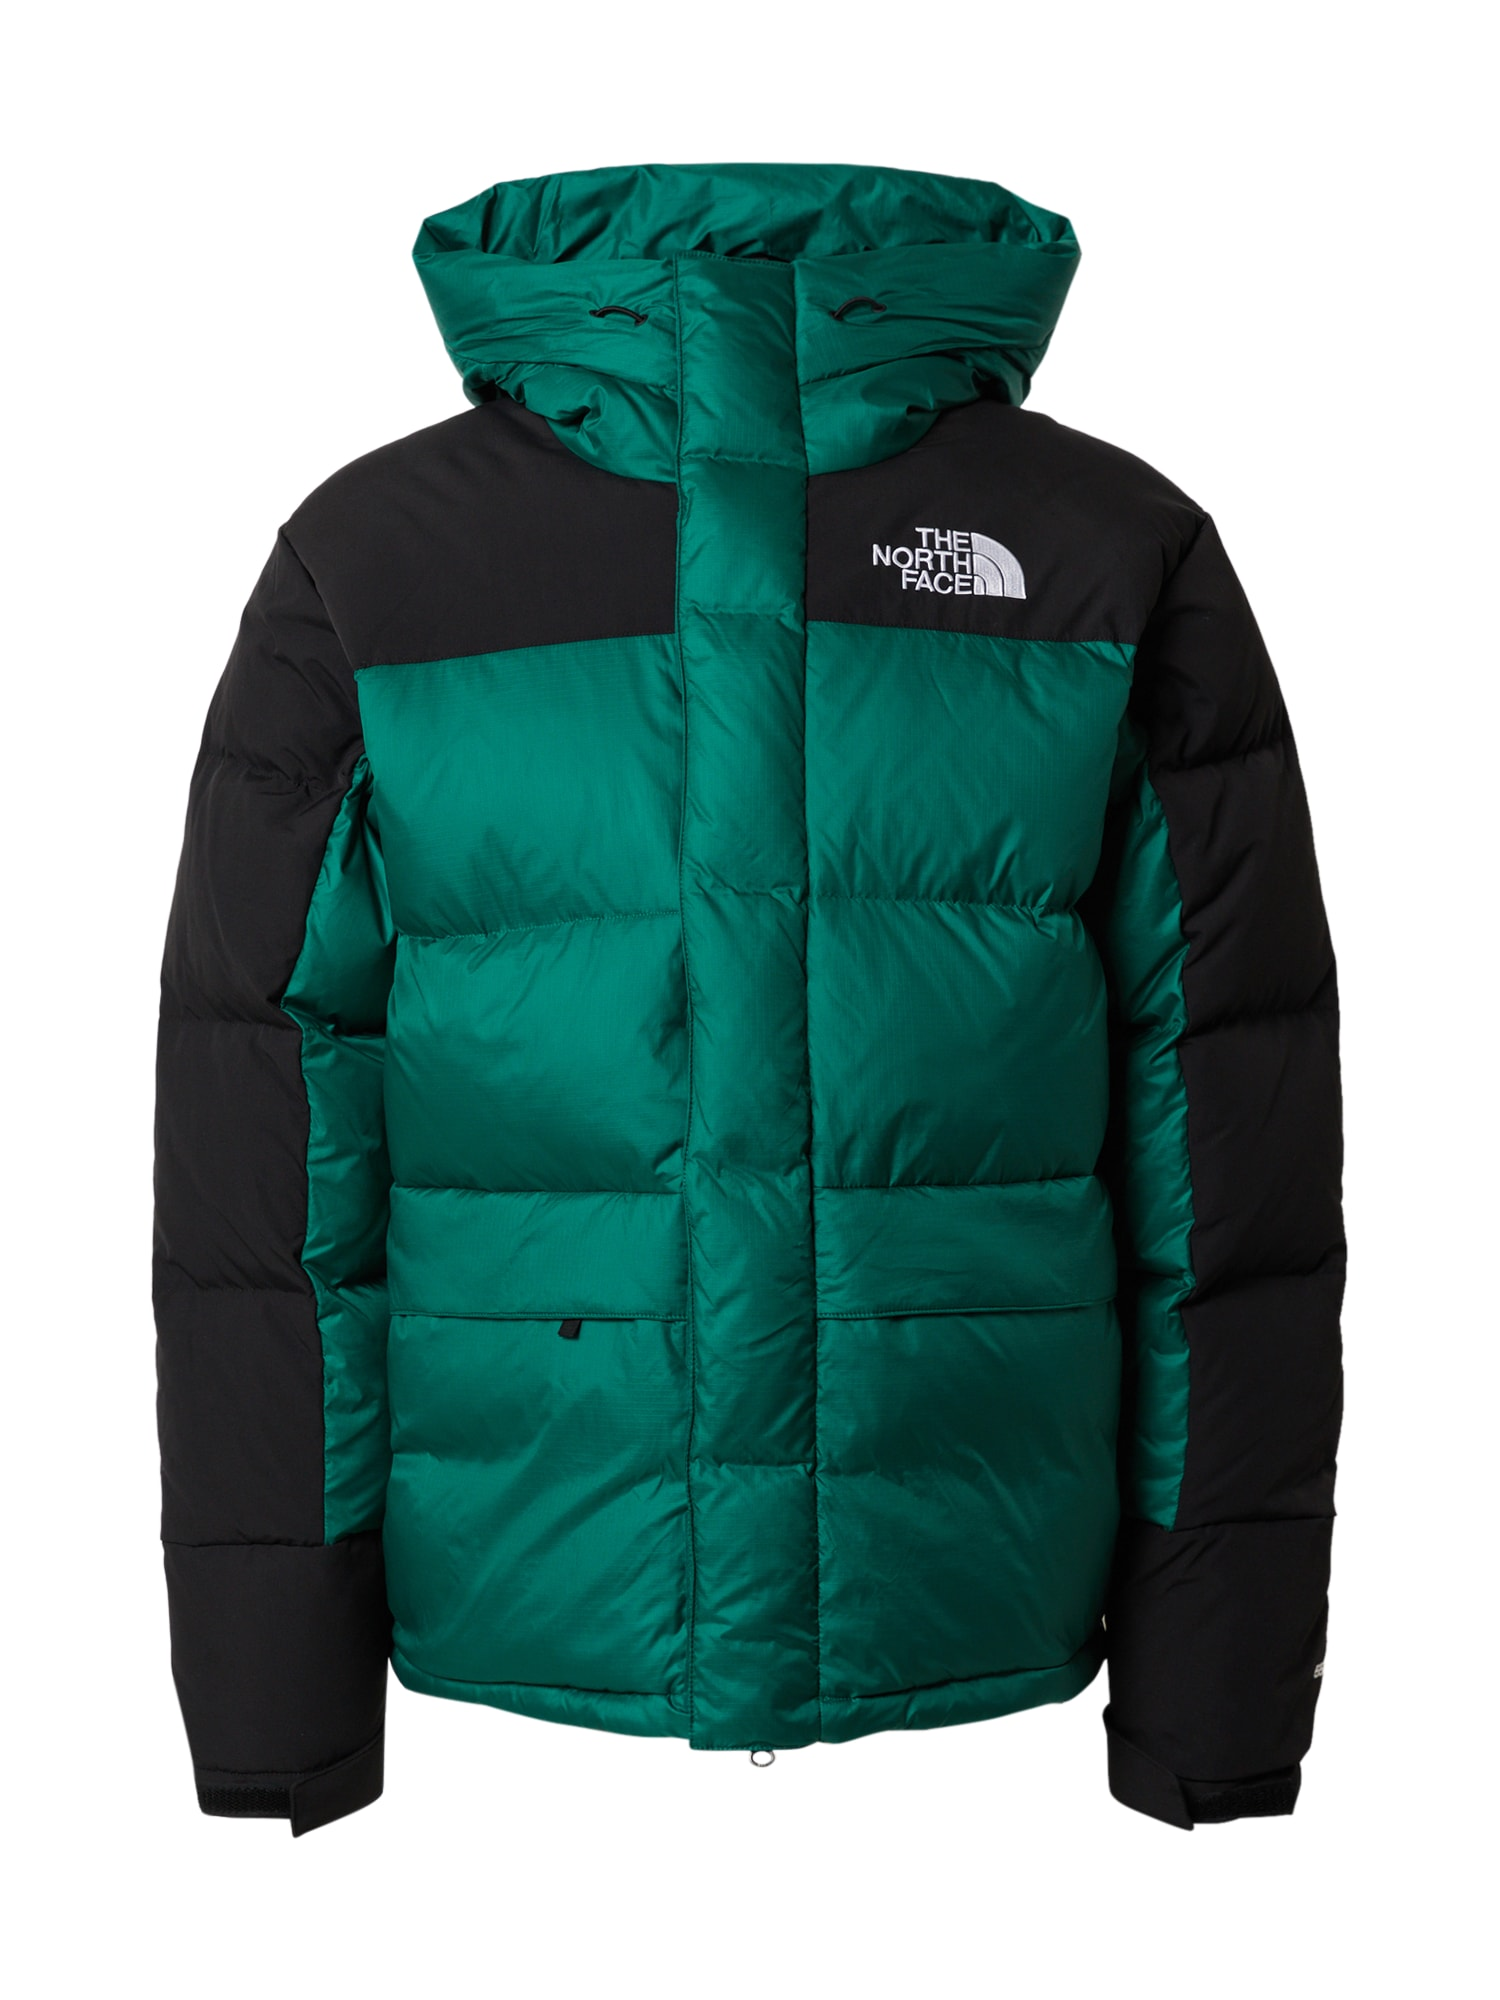 THE NORTH FACE Outdoorová bunda M HMLYN DOWN PARKA černá zelená The North Face